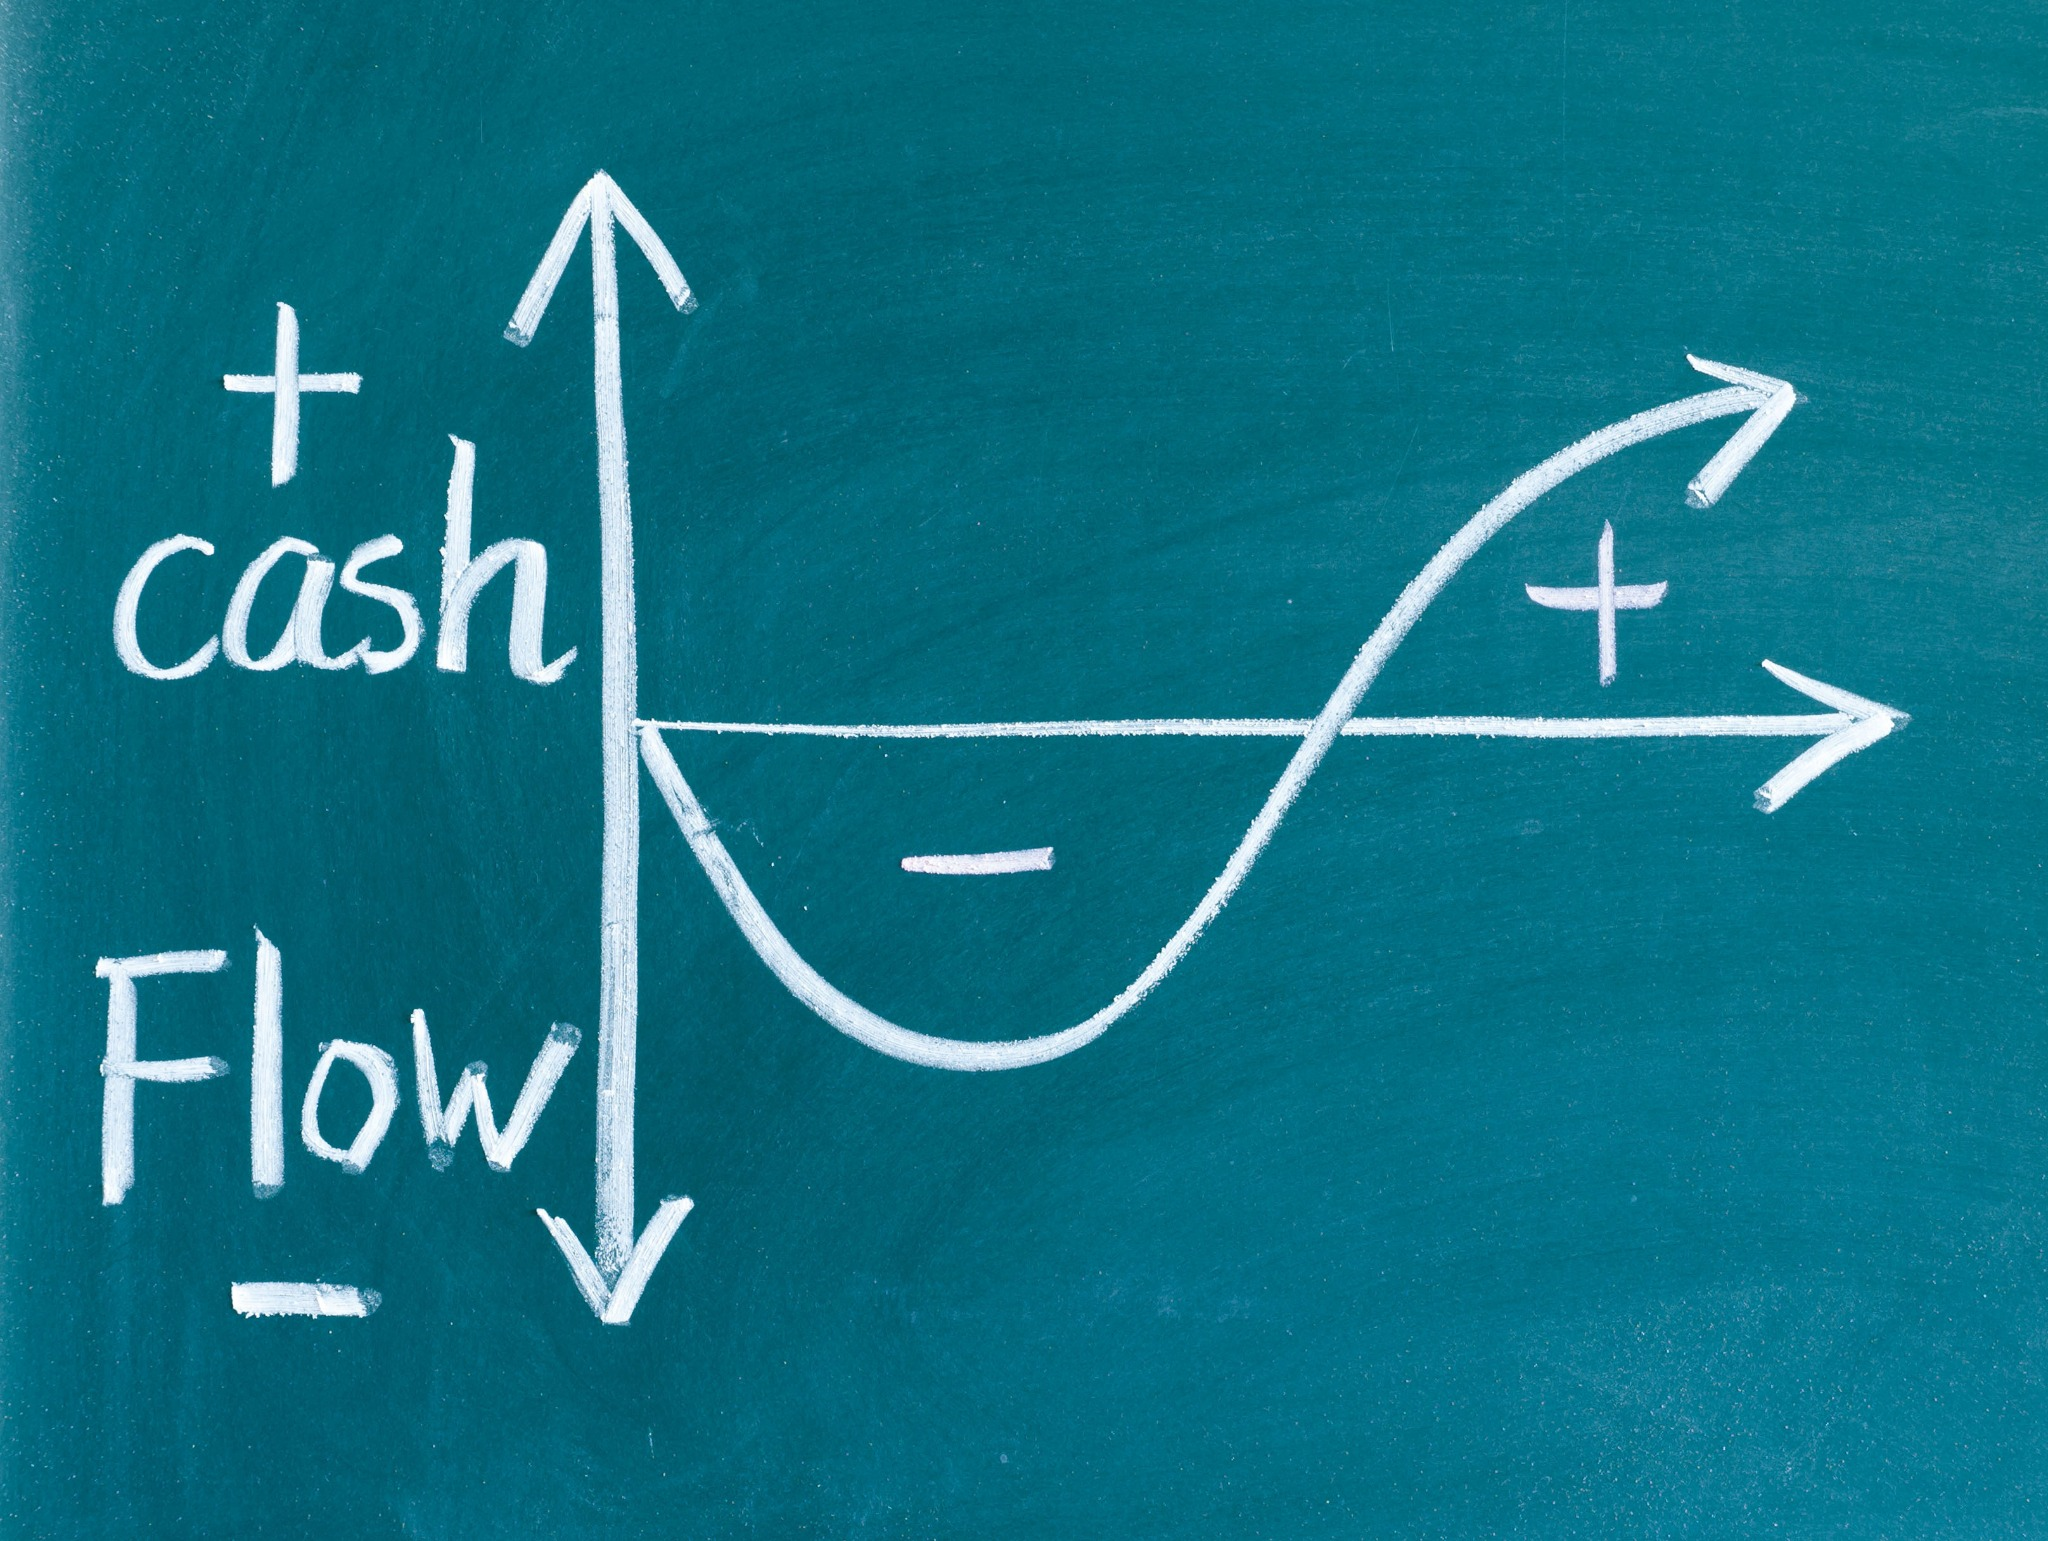 Nip cash flow woes to grow your business